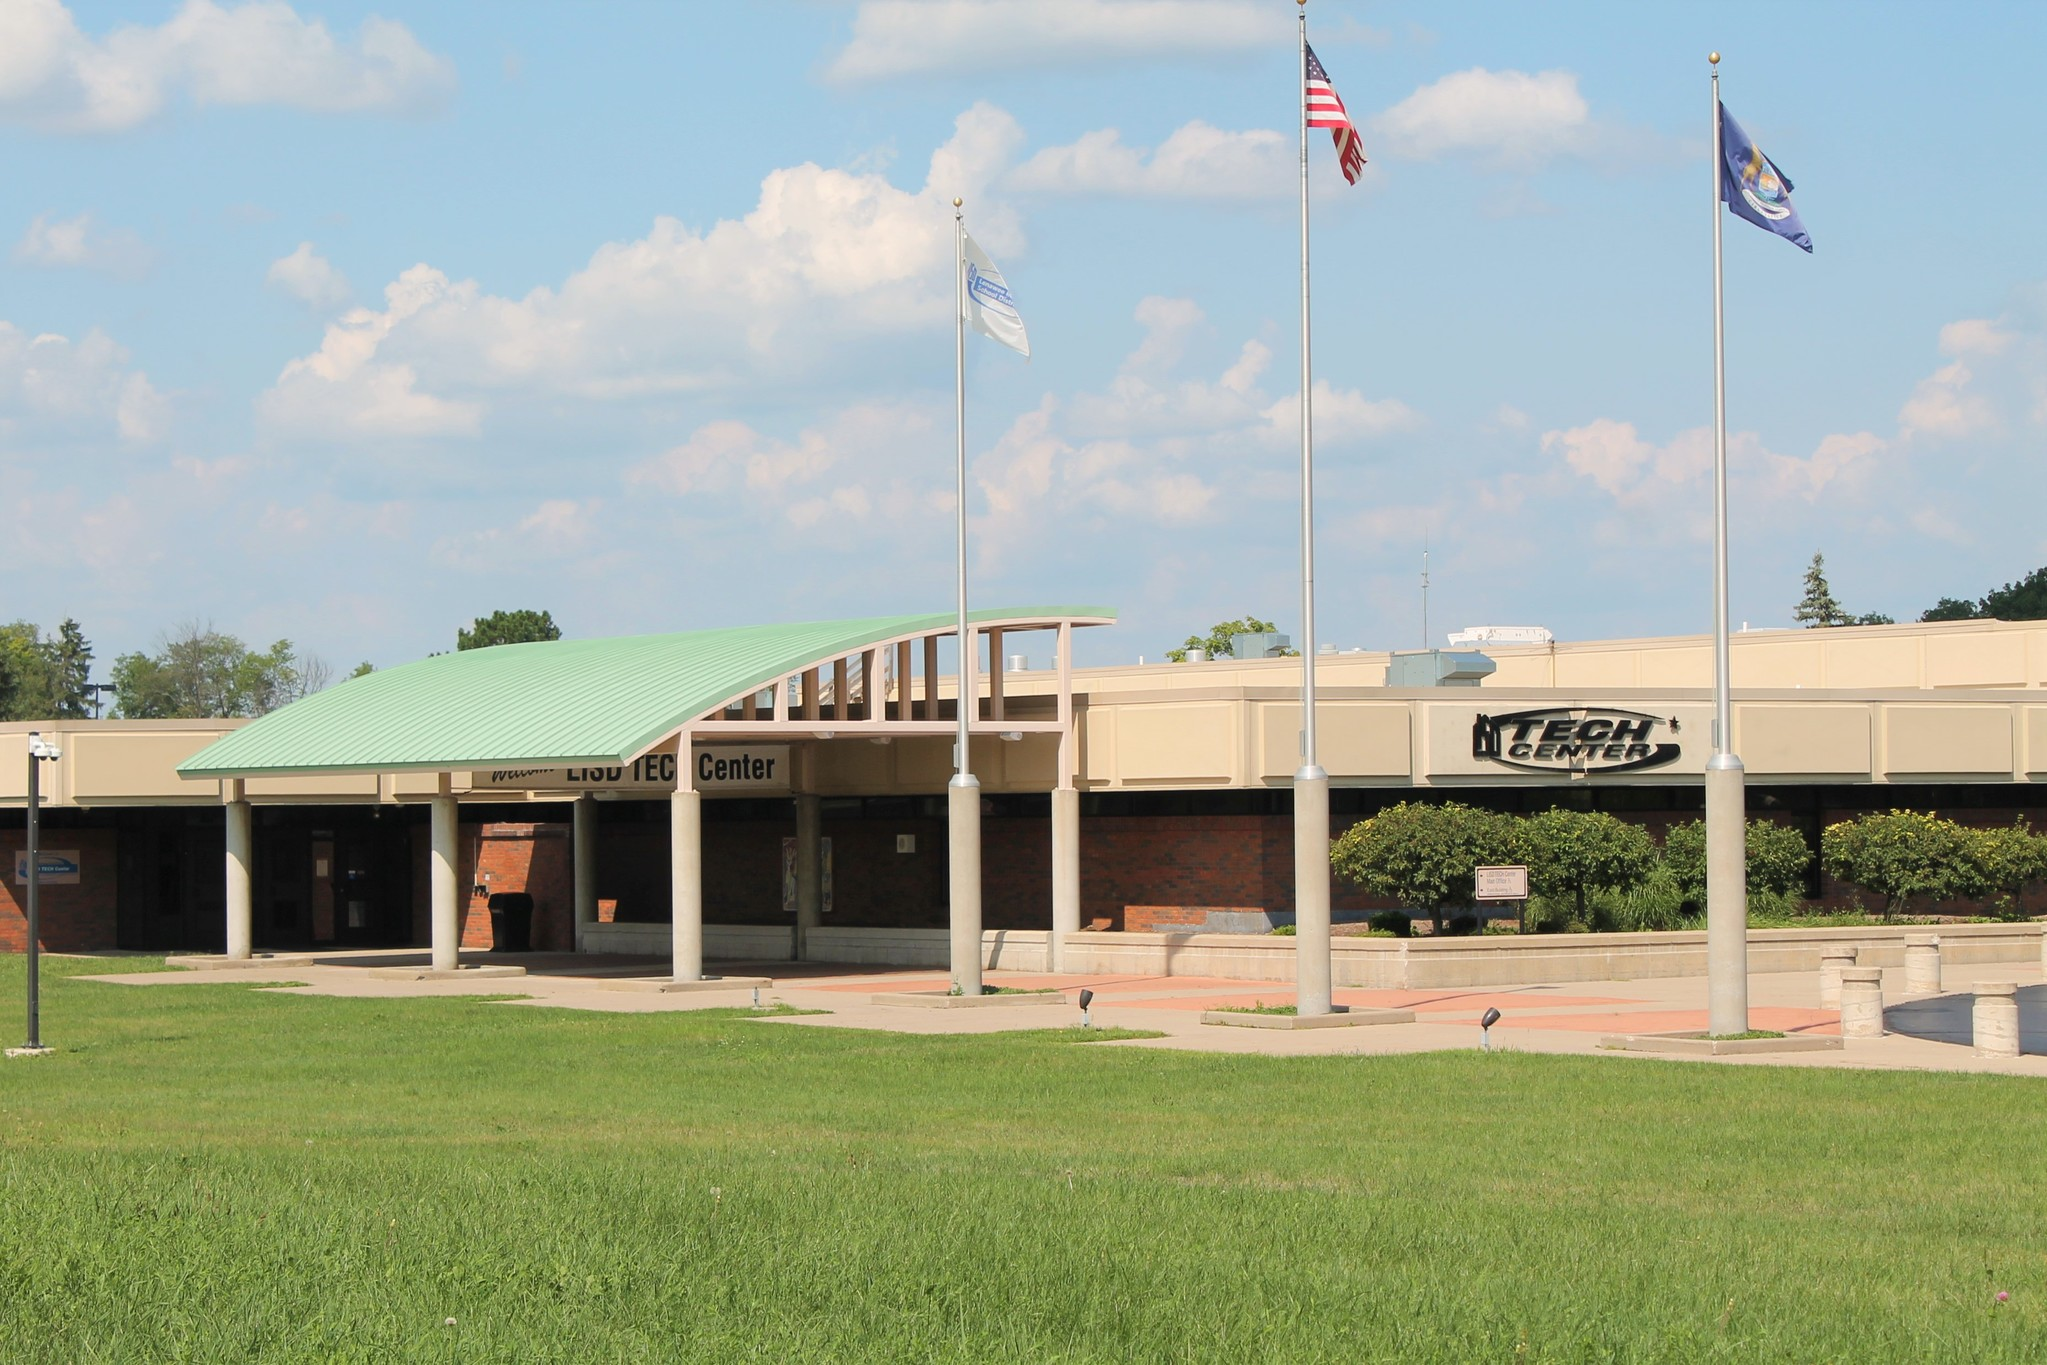 LISD TECH Center campus